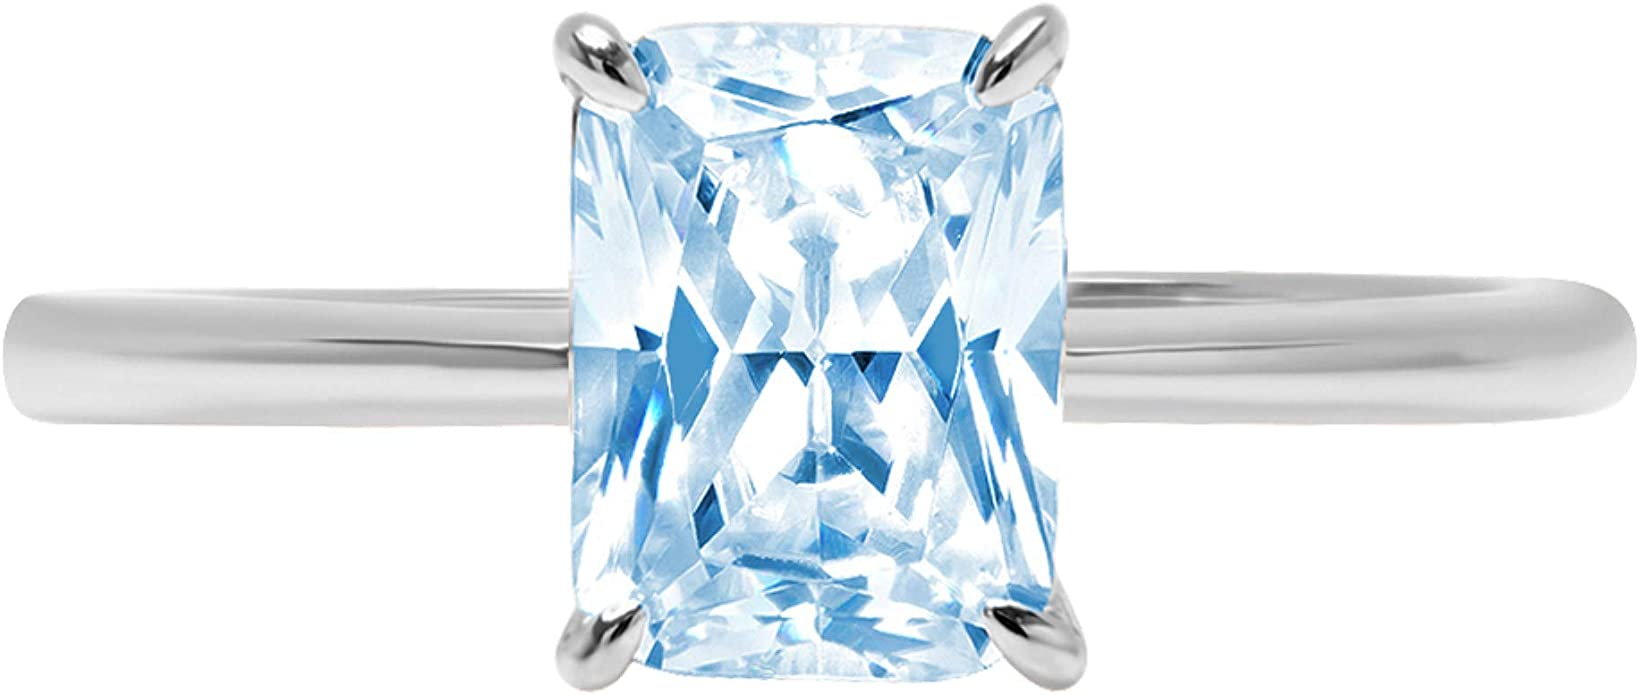 1.14 Carat Radiant Cut Simulated Diamond Art Deco Solitaire Wedding Engagement Bridal Ring Round CZ 925 Sterling Silver